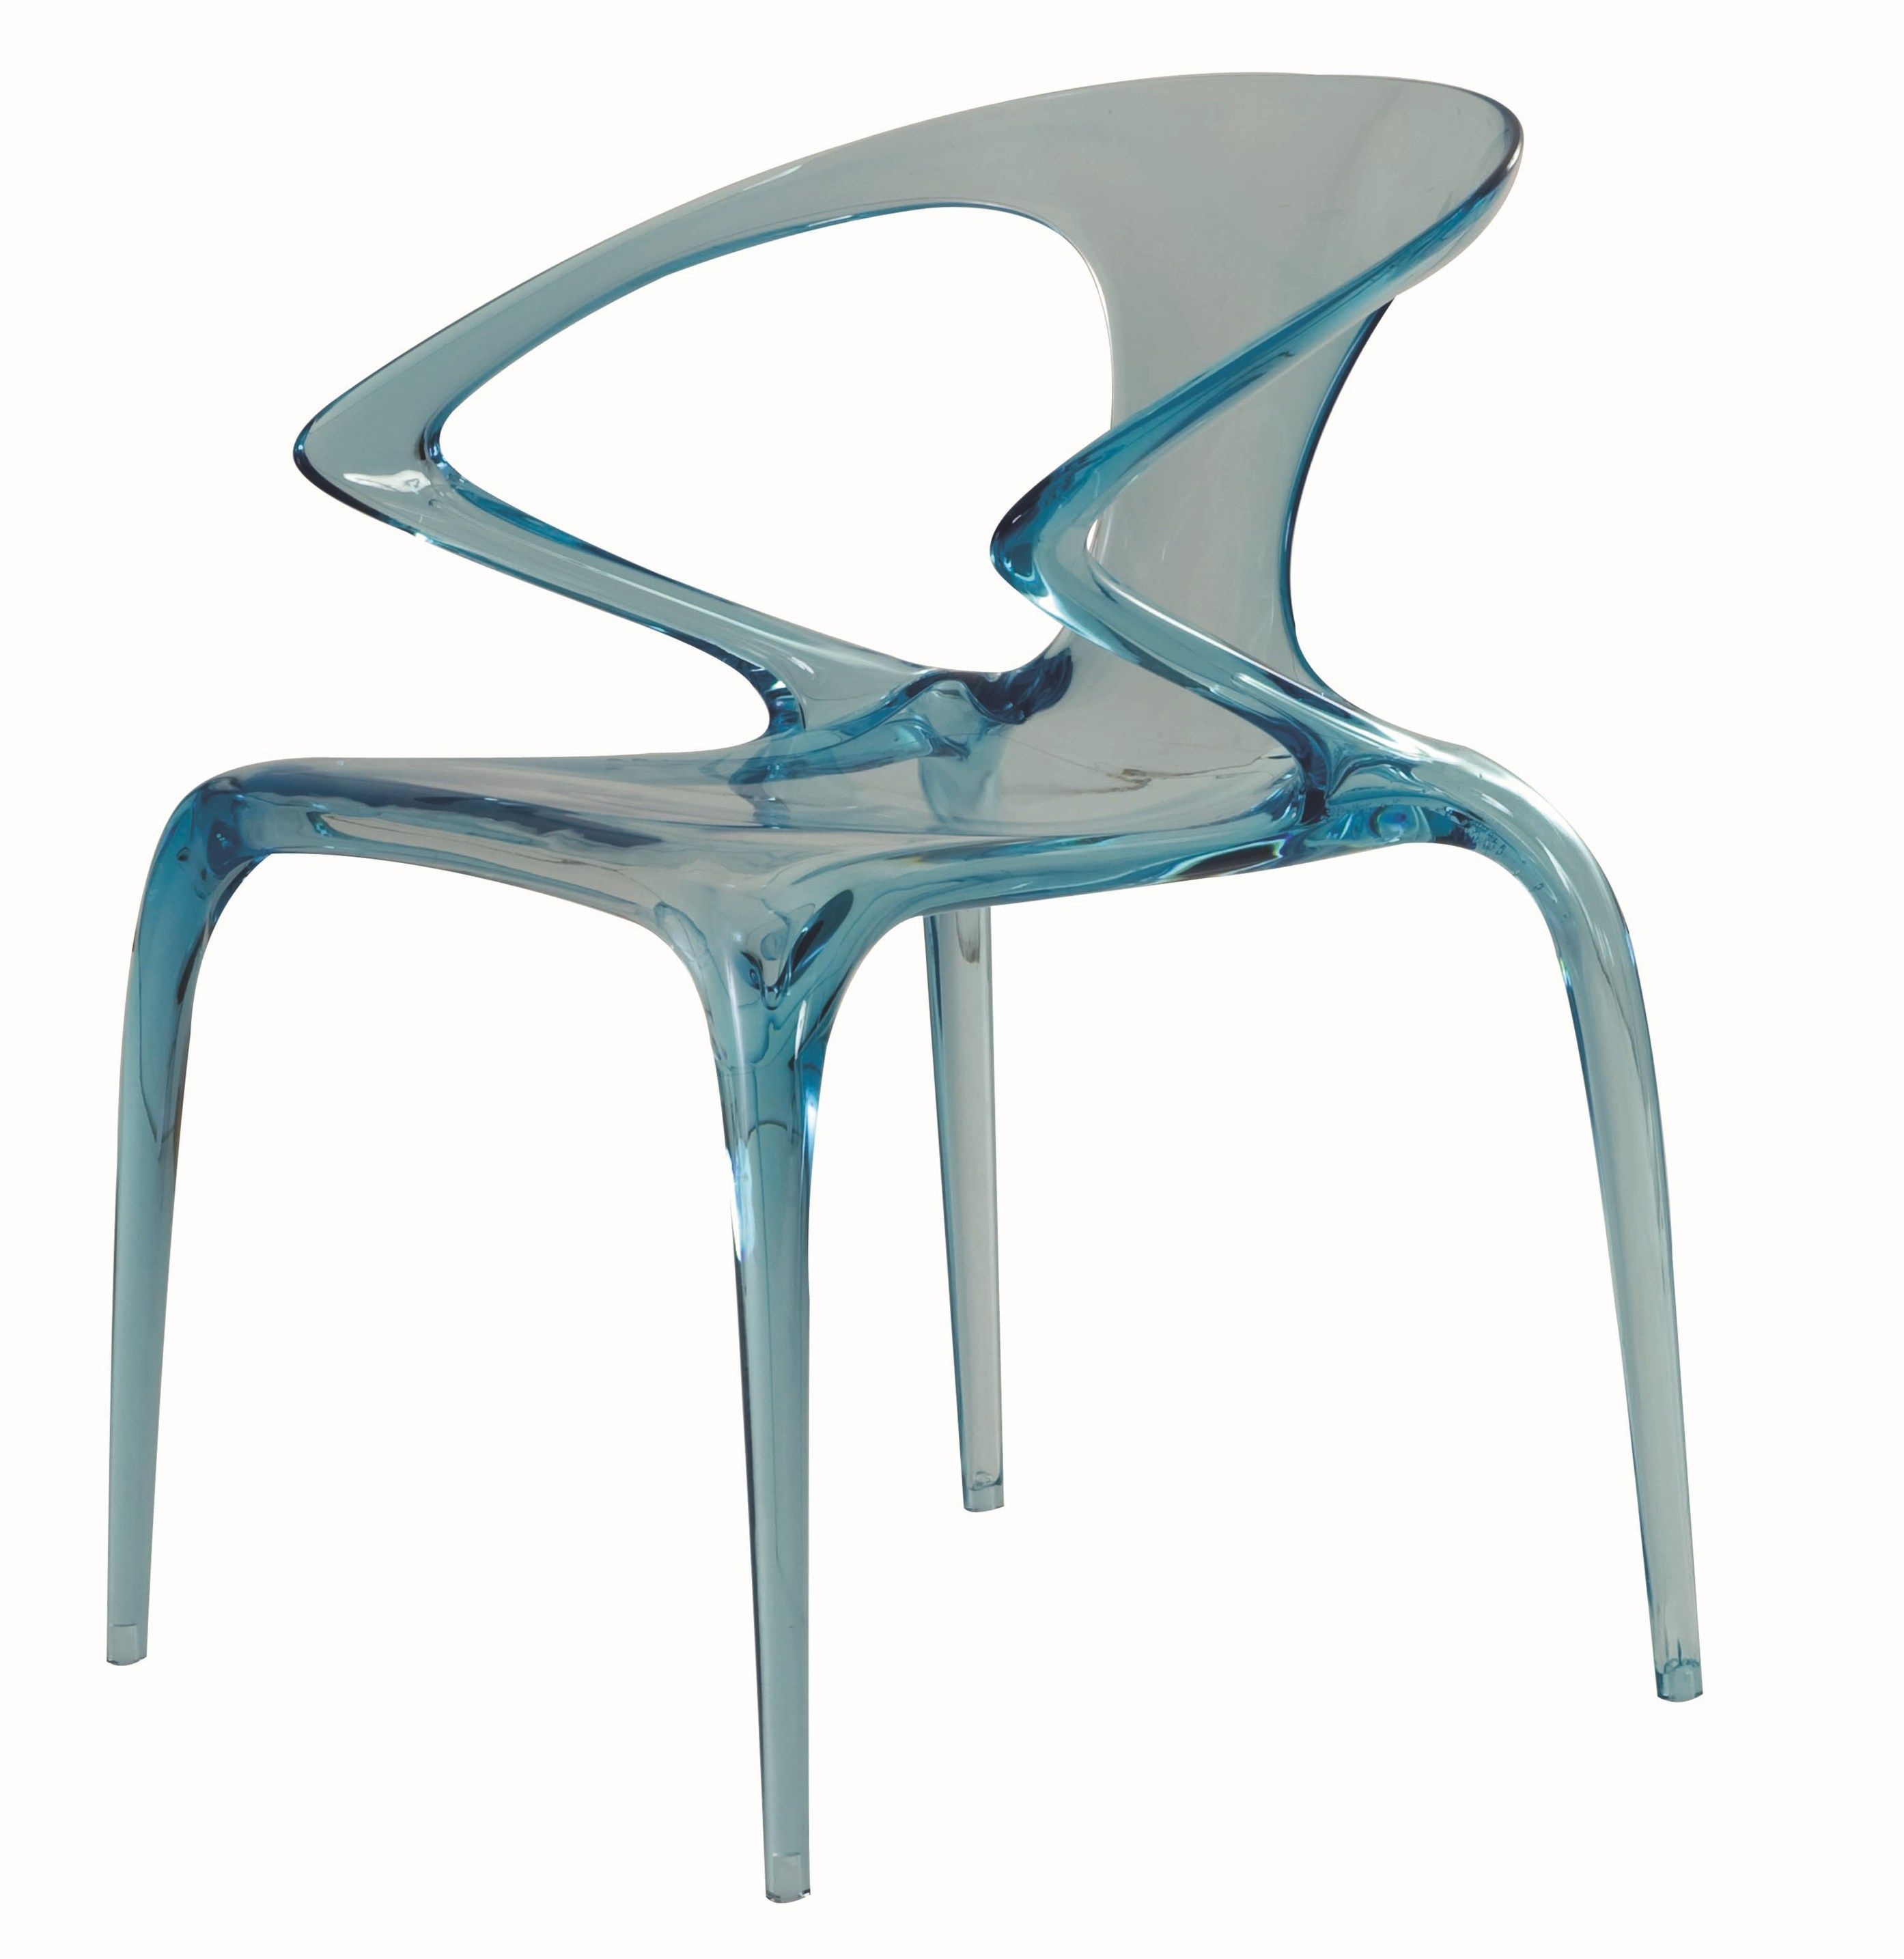 Chaise empilable avec accoudoirs AVA by ROCHE BOBOIS design Song ...